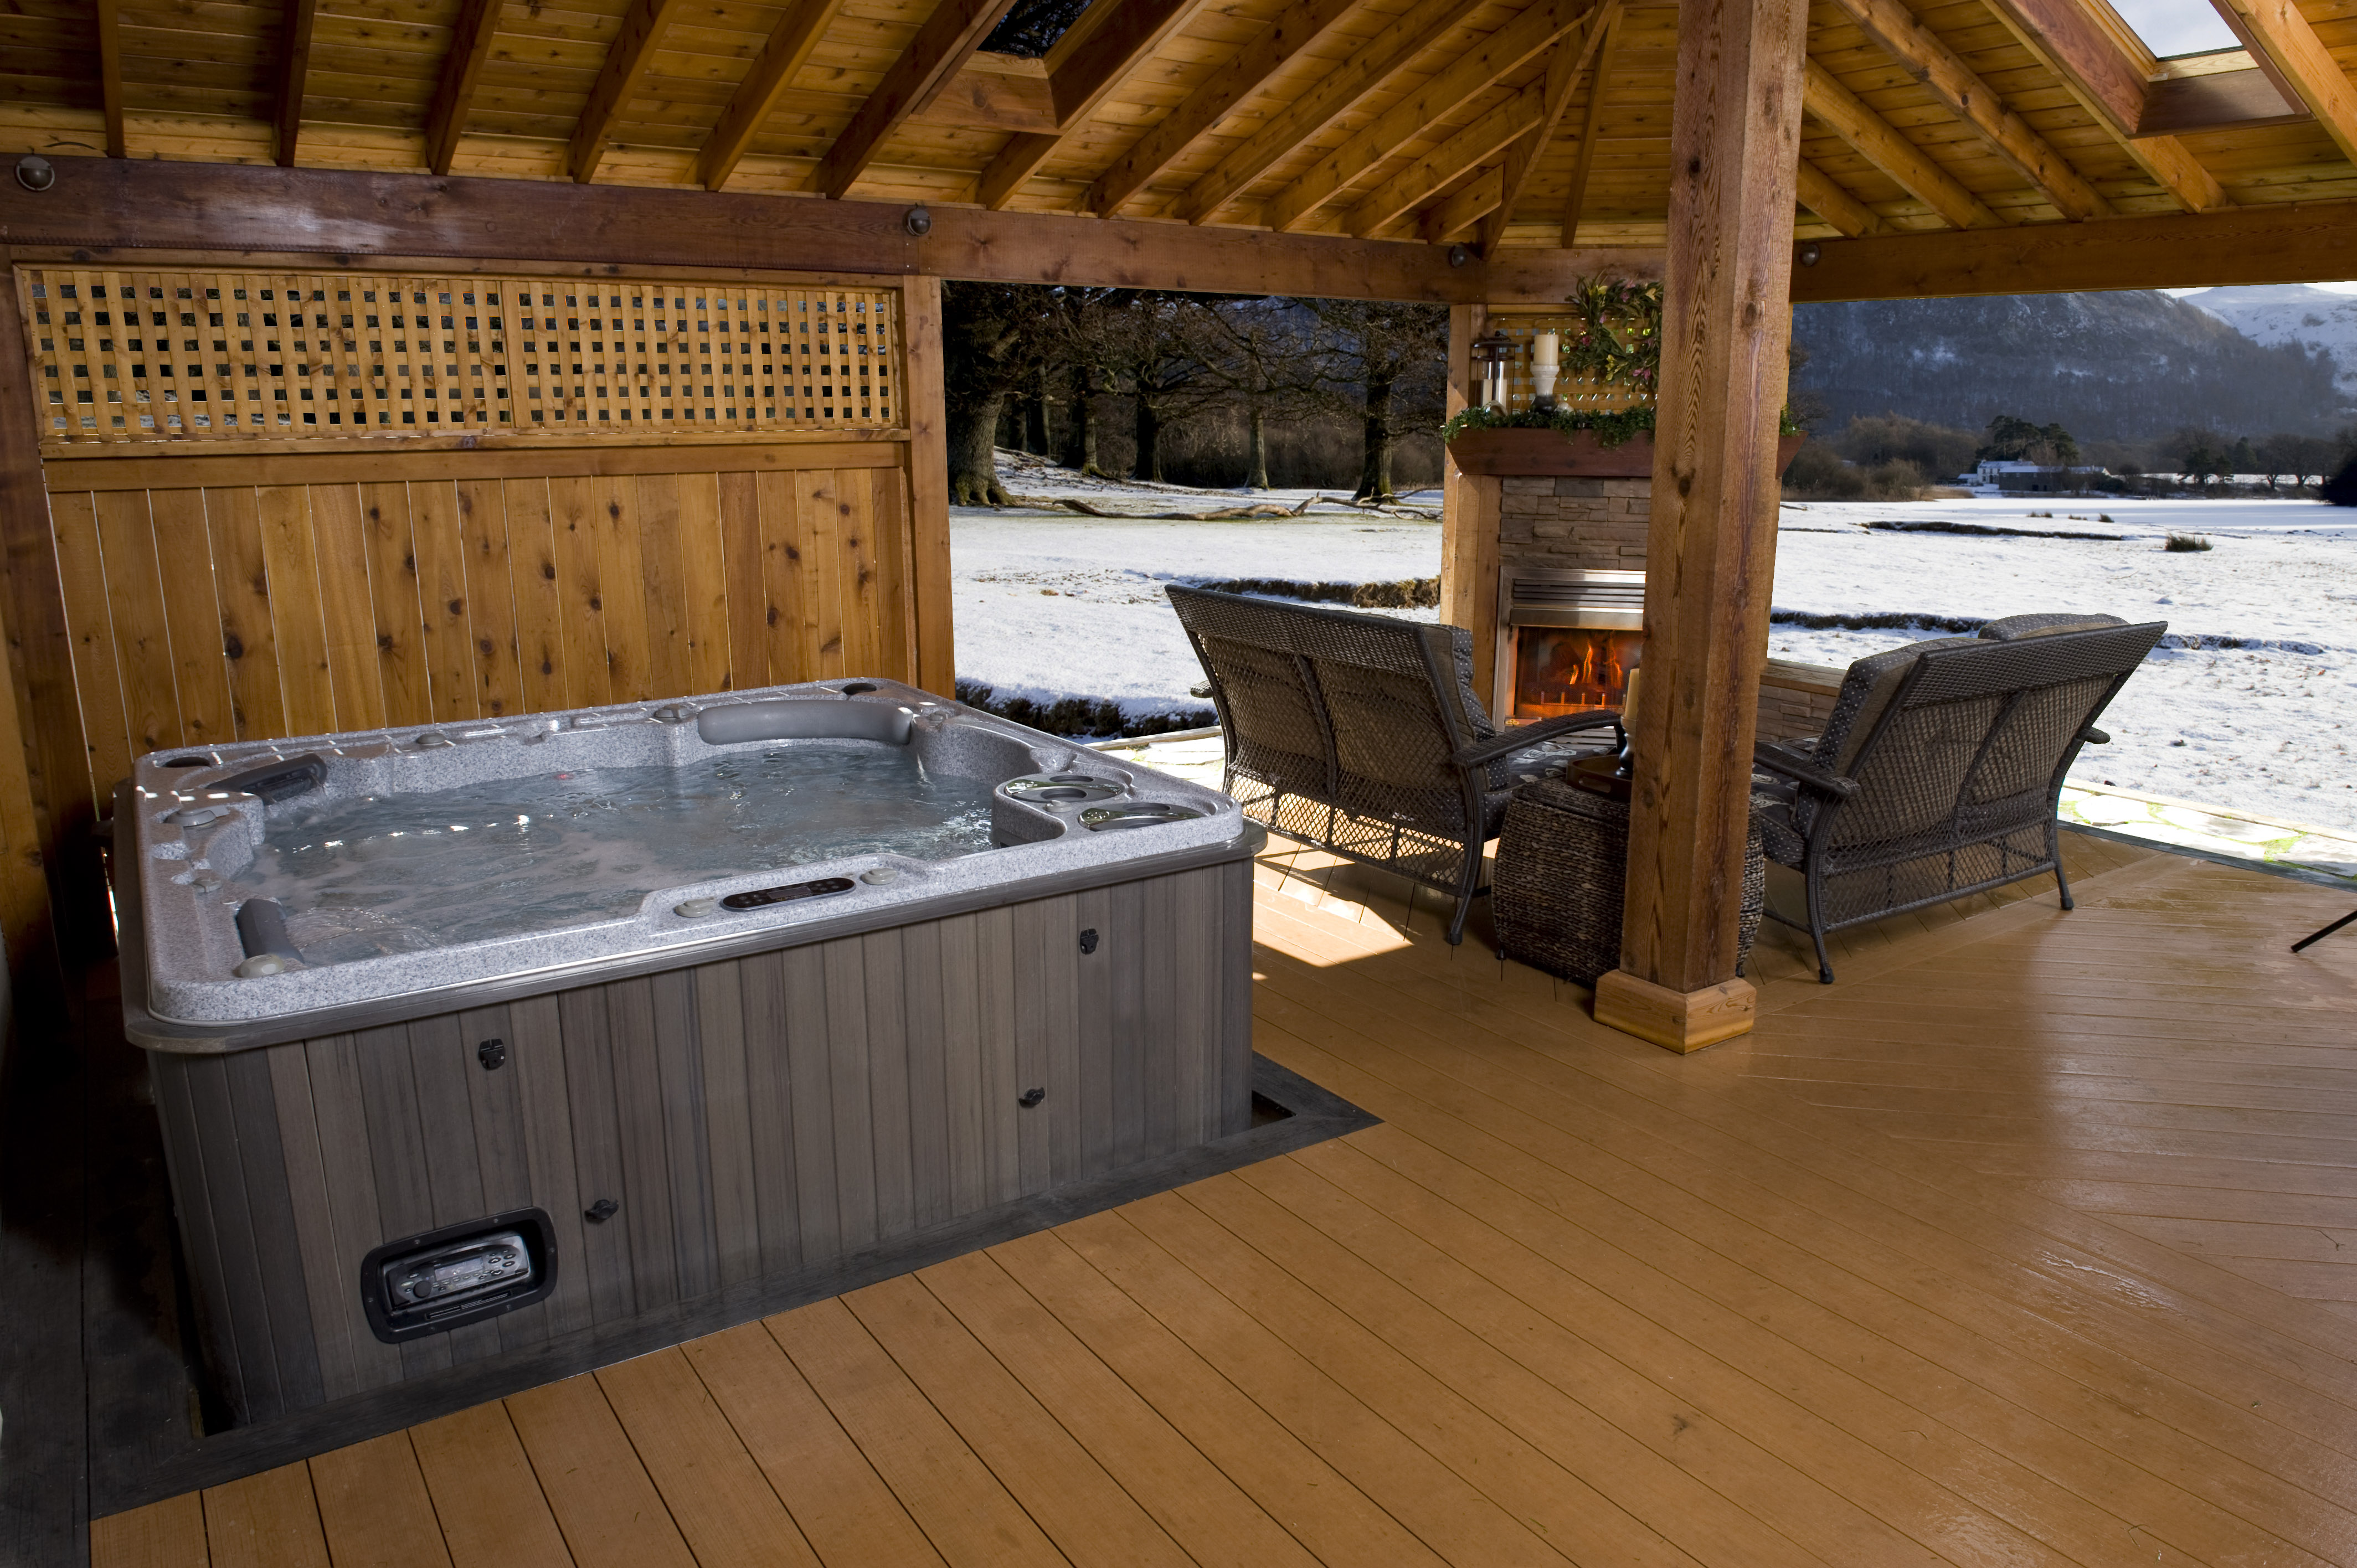 tub winter efficiency learn hydropool sale tubs used the en efficient hot features for world energy most in key